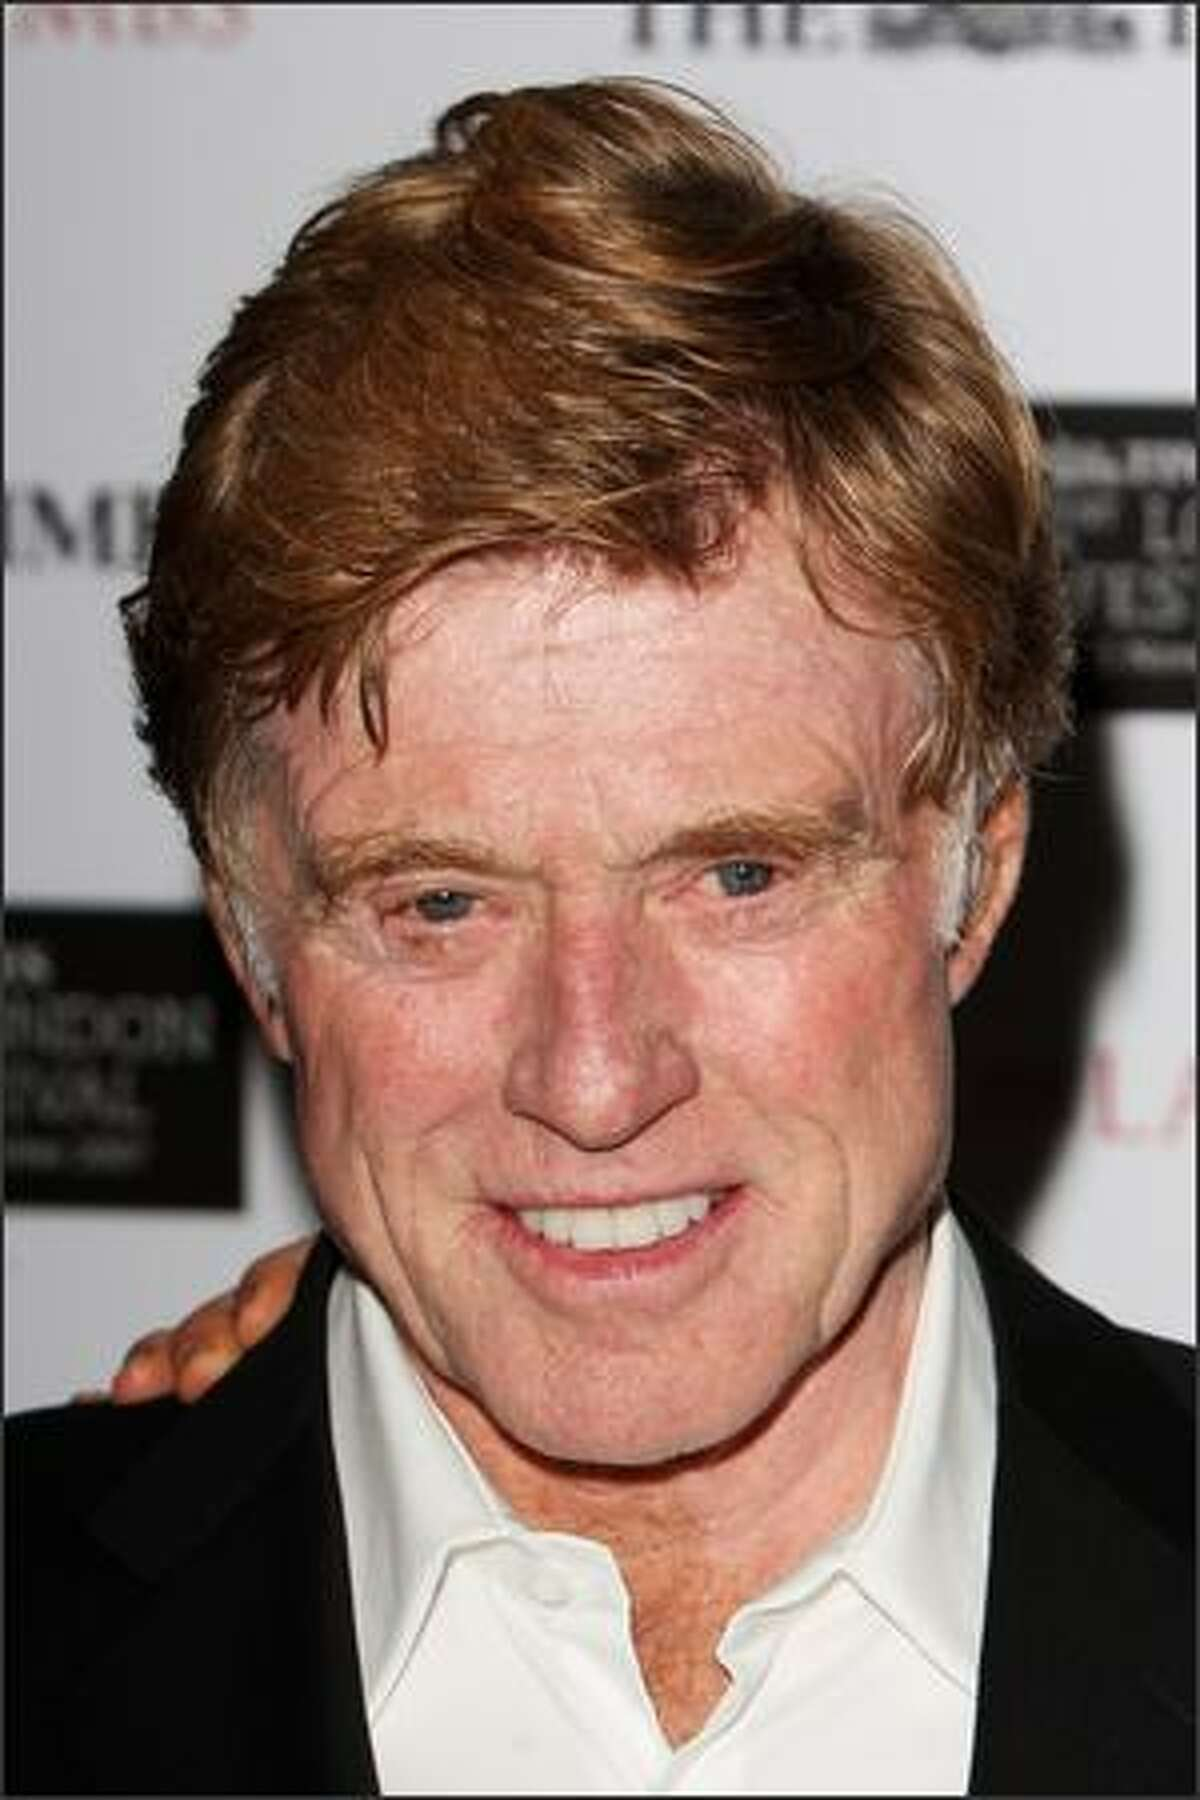 Actor Robert Redford attends The Times BFI 51st London Film Festival gala screening and world premiere of 'Lions for Lambs' at the Odeon Leicester Square in London, England.